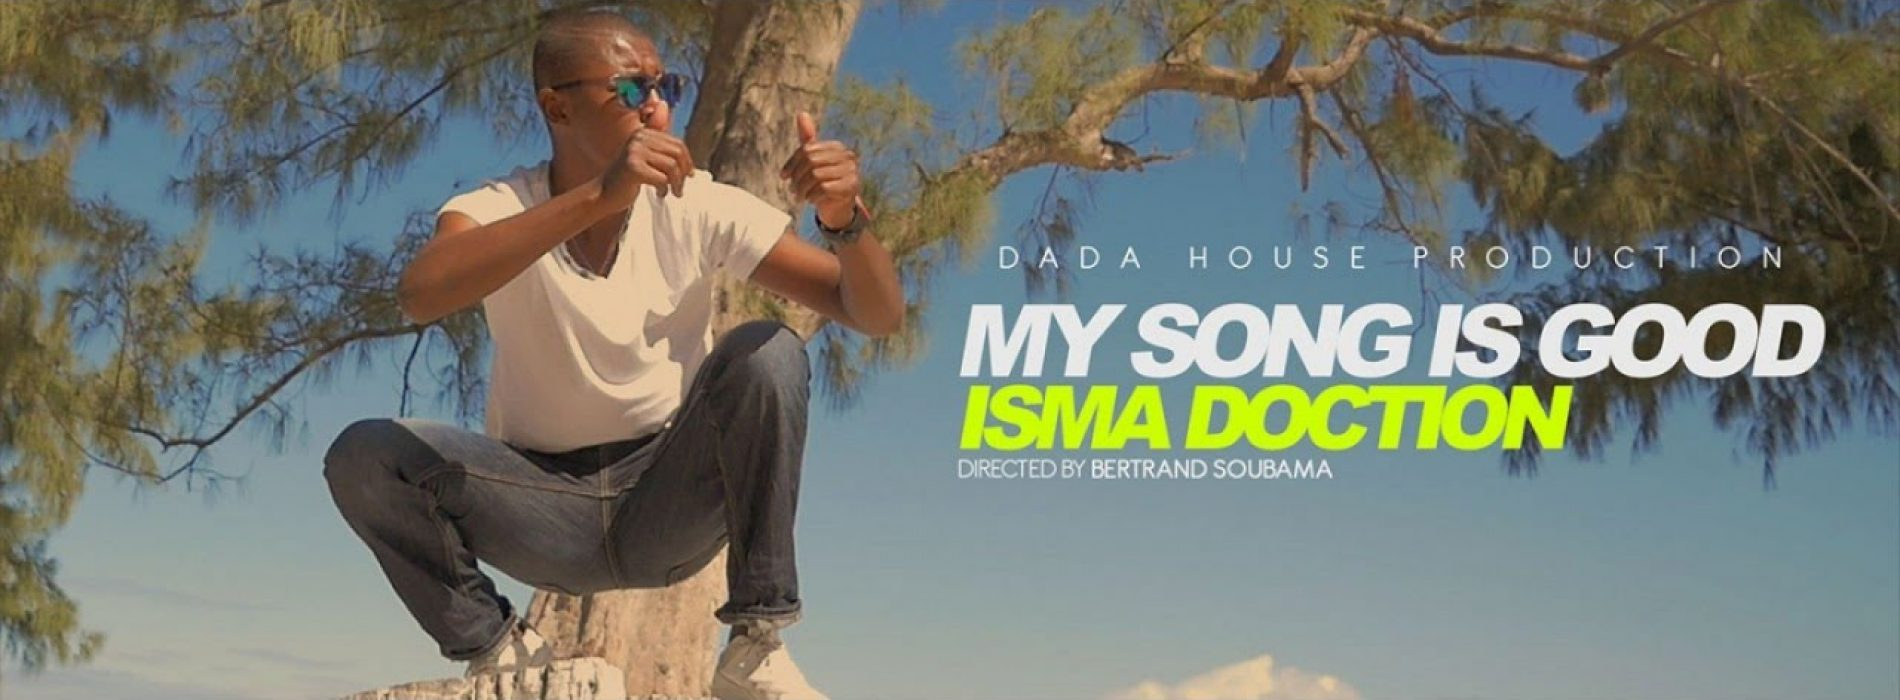 """DADA HOUSE présente ISMA DOCTION  – """"My Song is Good"""" – Juillet 2017"""